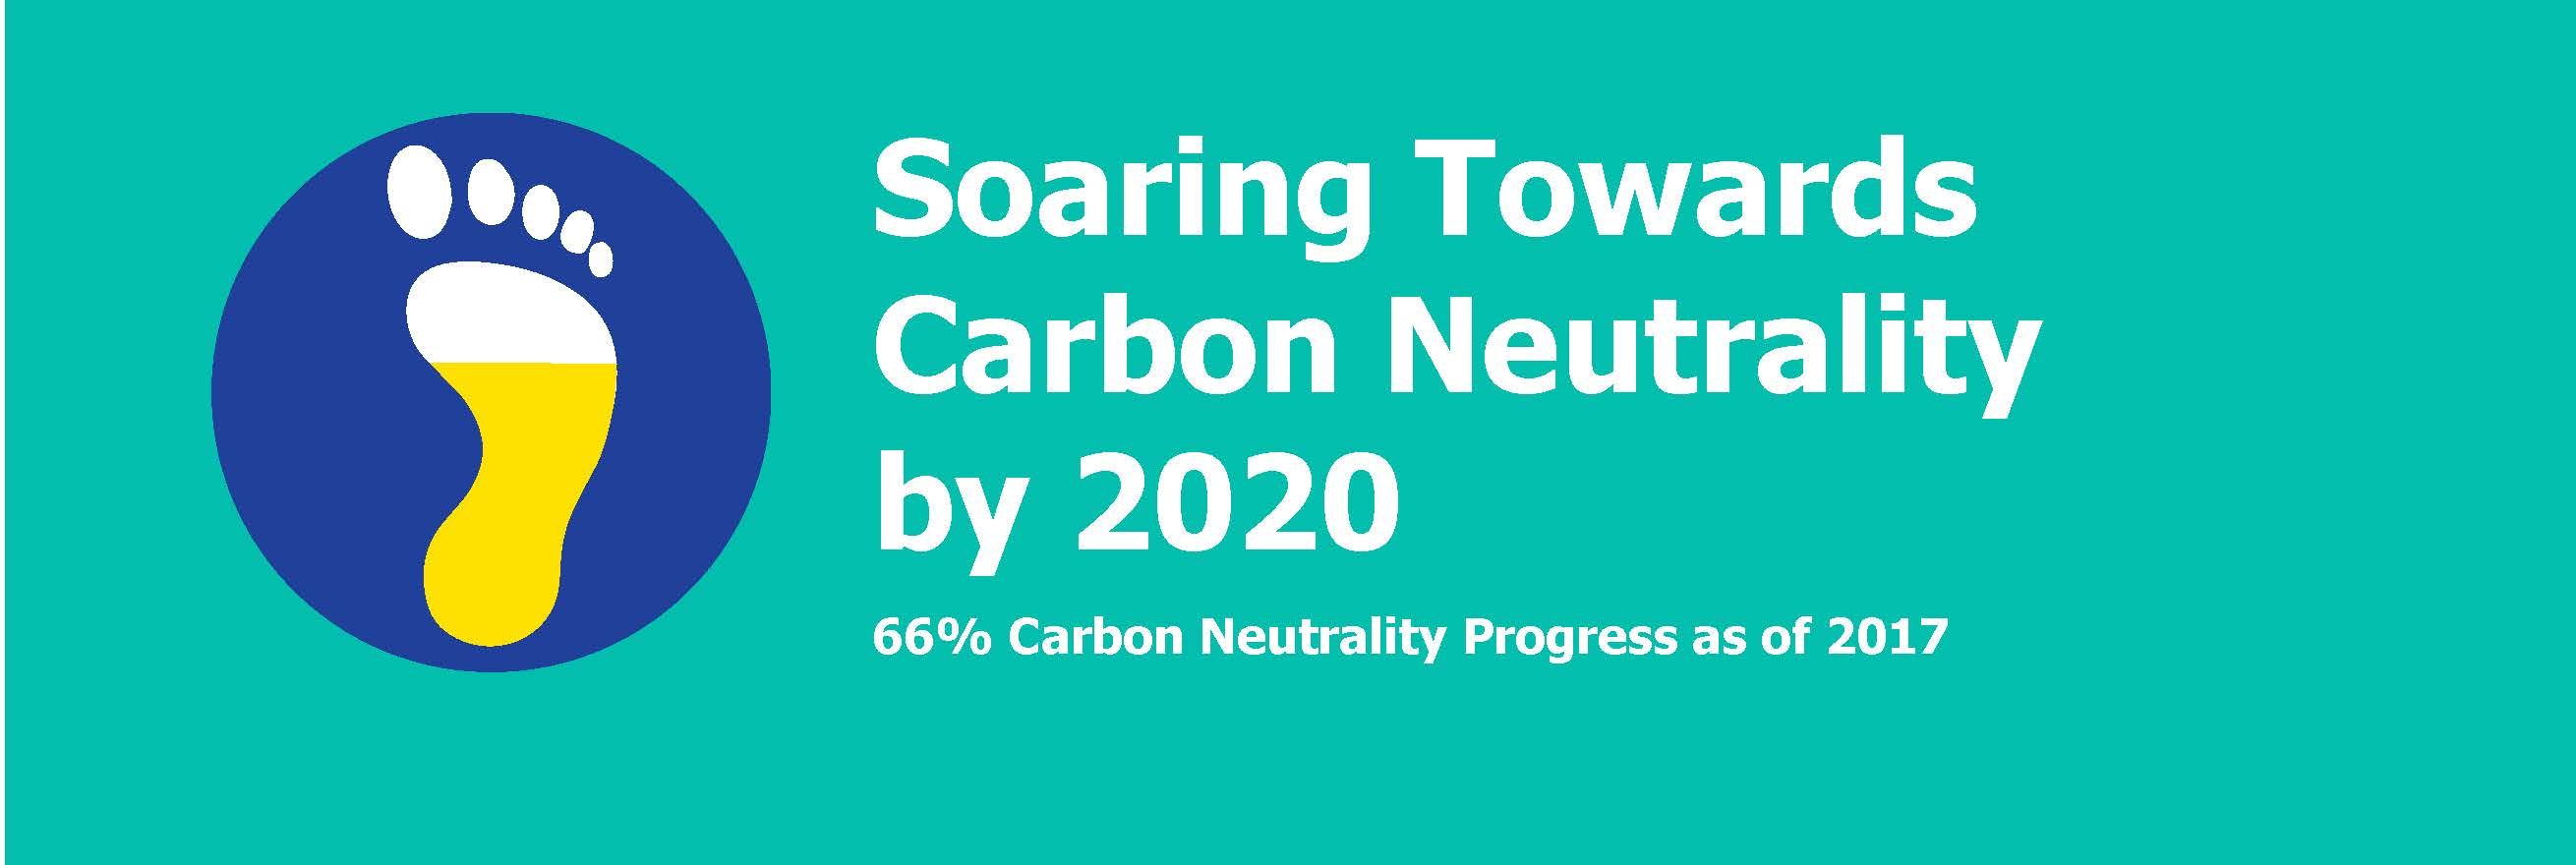 Soaring Towards Carbon Neutrality by 2020. 66% Carbon Neutrality Progress as of 2017